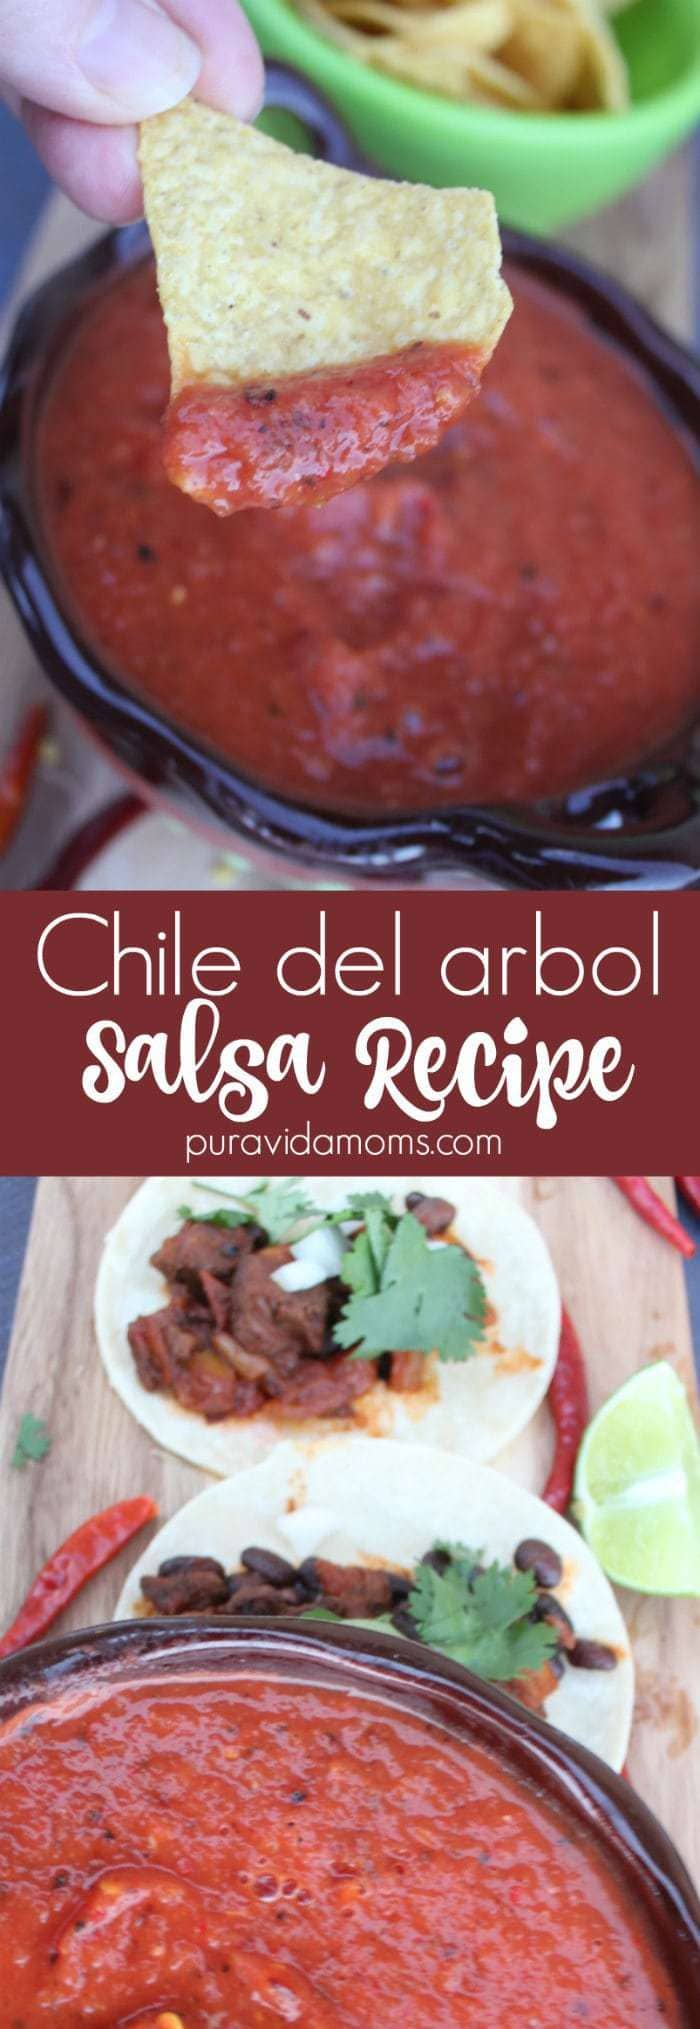 Chile del arbol 10 Minute Salsa Recipe